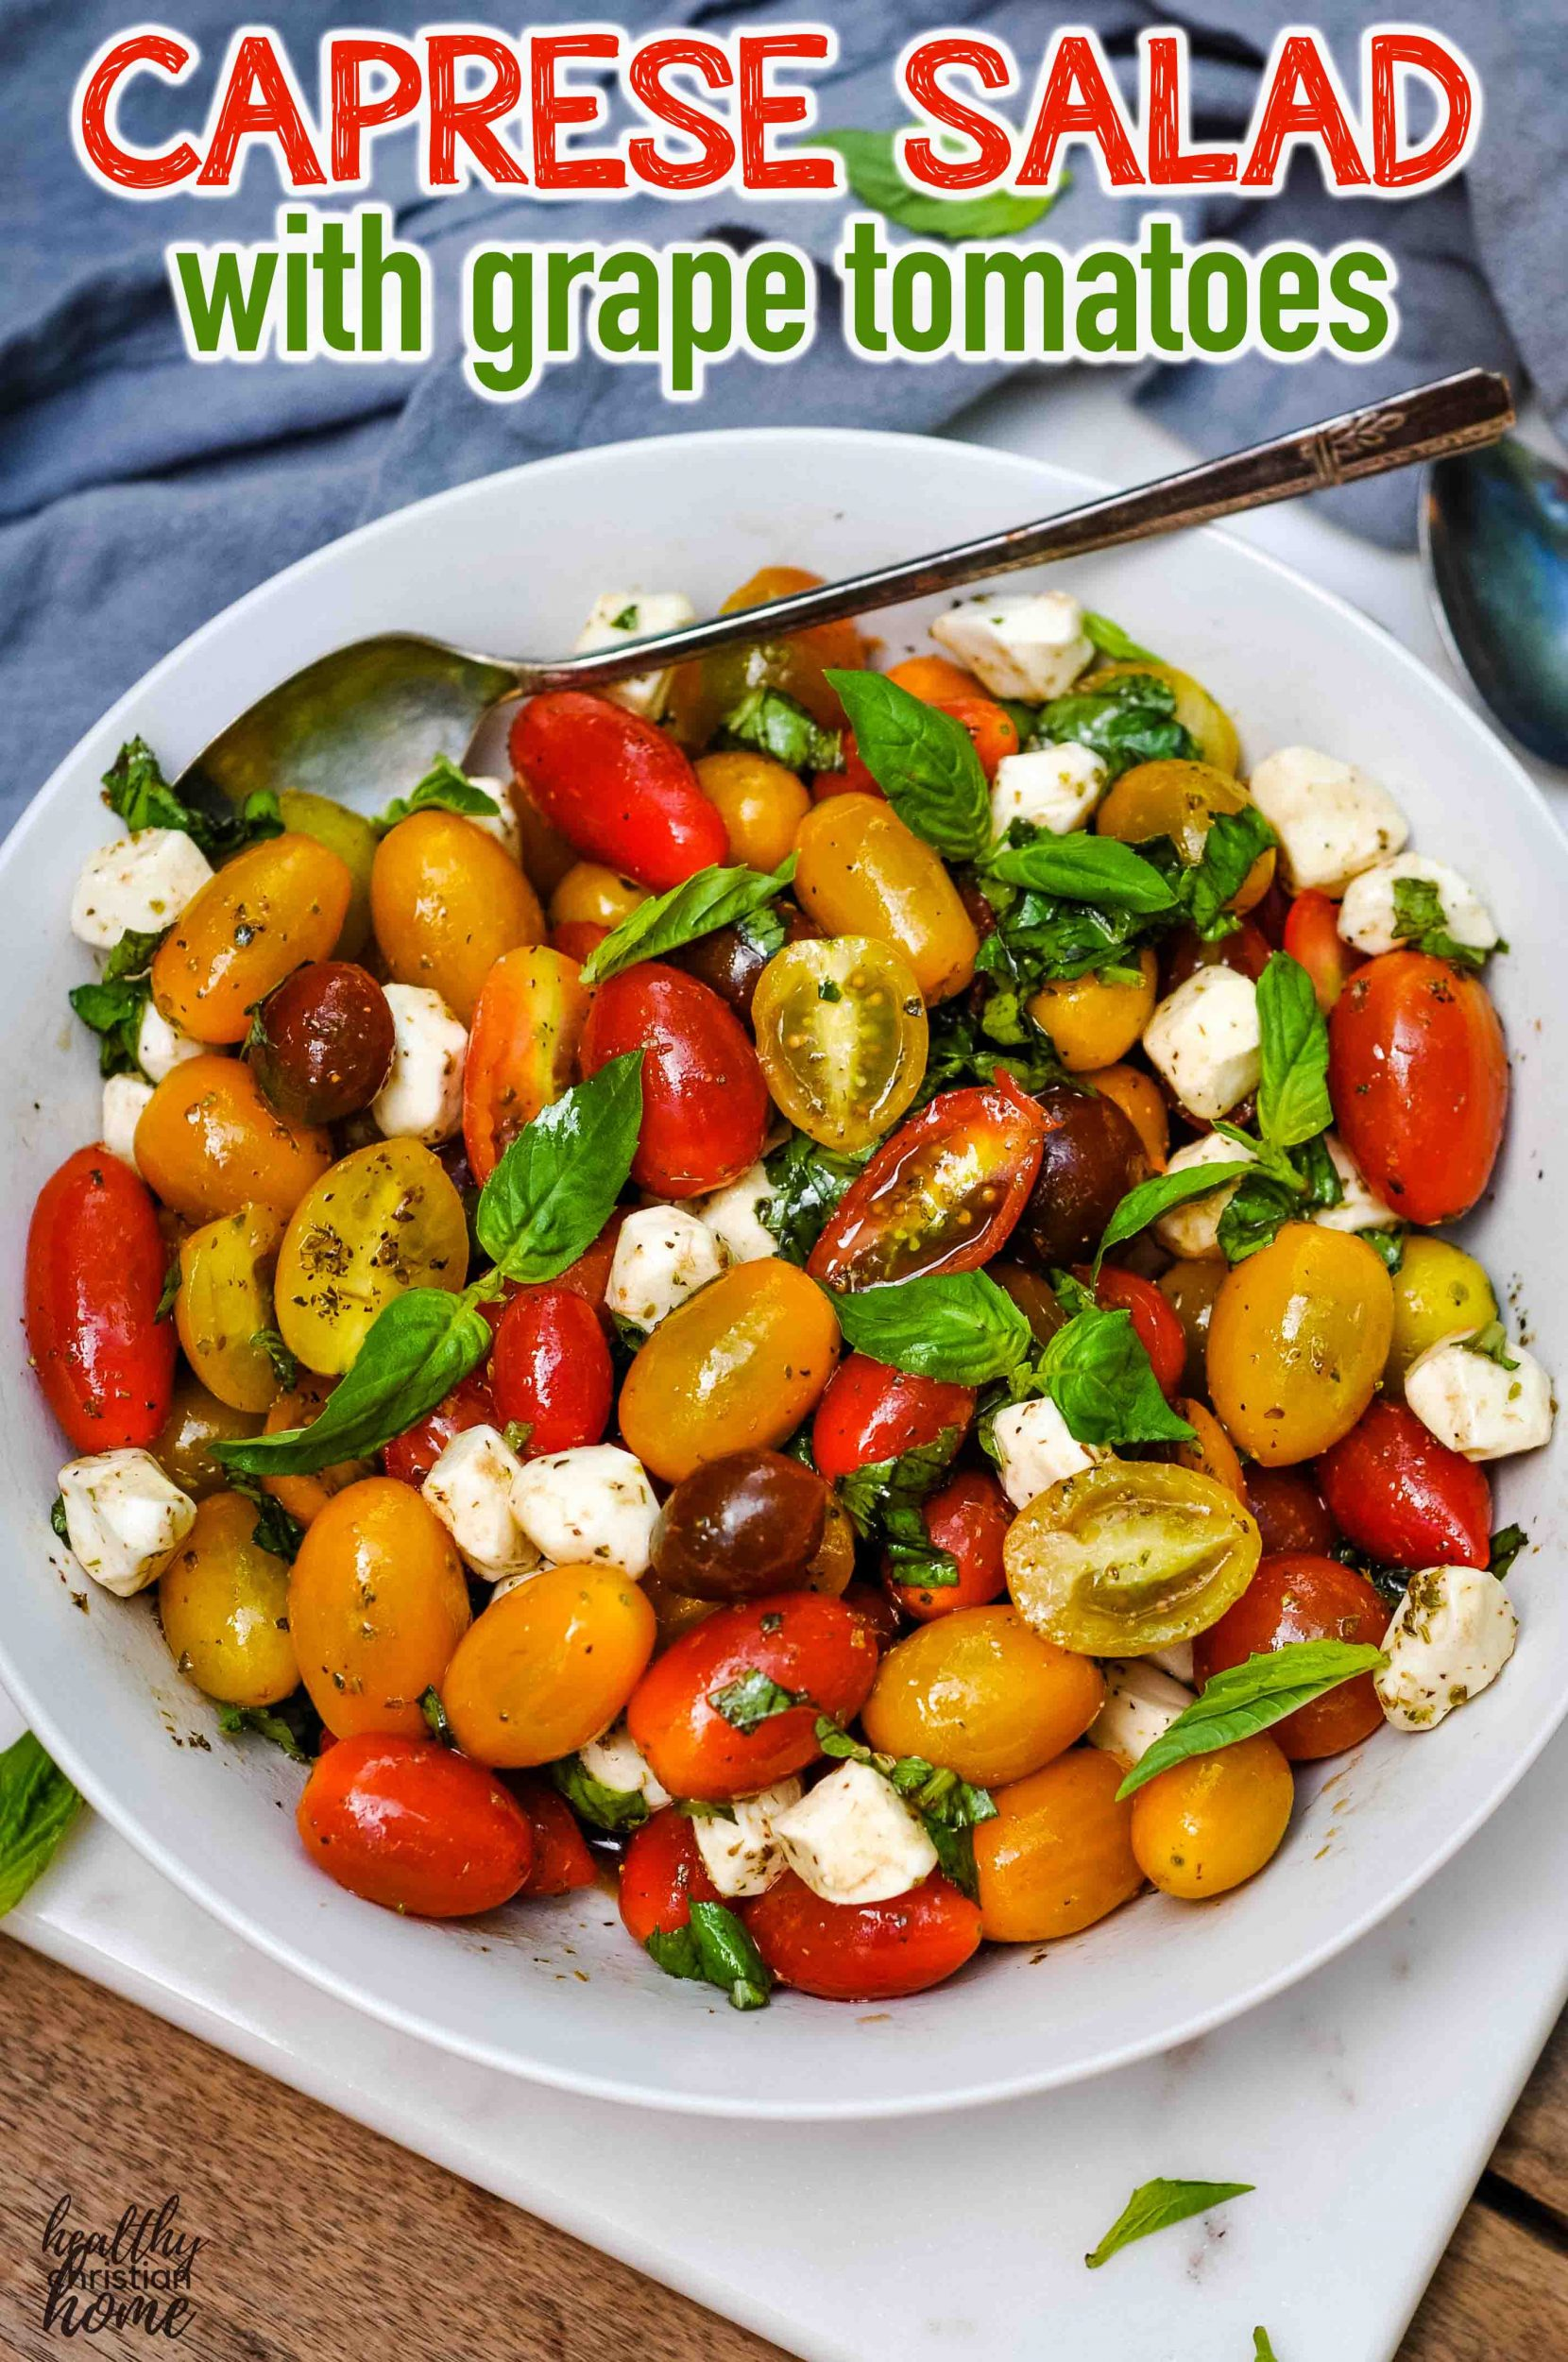 Caprese salad with grape tomatoes in a large bowl.